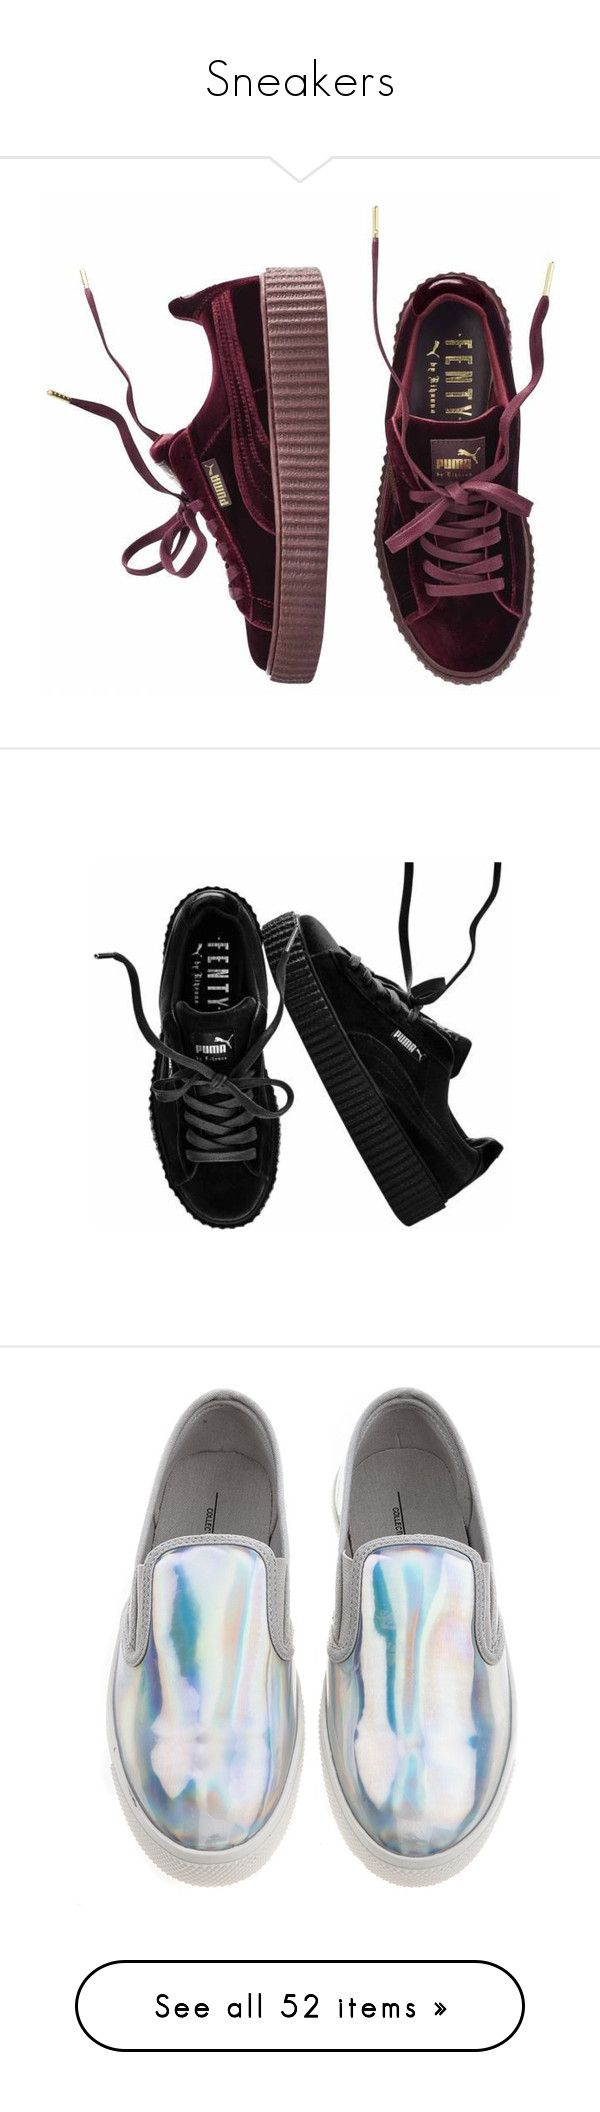 """""""Sneakers"""" by gabriel-sampaiooo on Polyvore featuring shoes, sneakers, special occasion shoes, puma footwear, velvet shoes, cocktail shoes, puma creeper, shoes - sneakers, creeper sneakers e puma sneakers"""